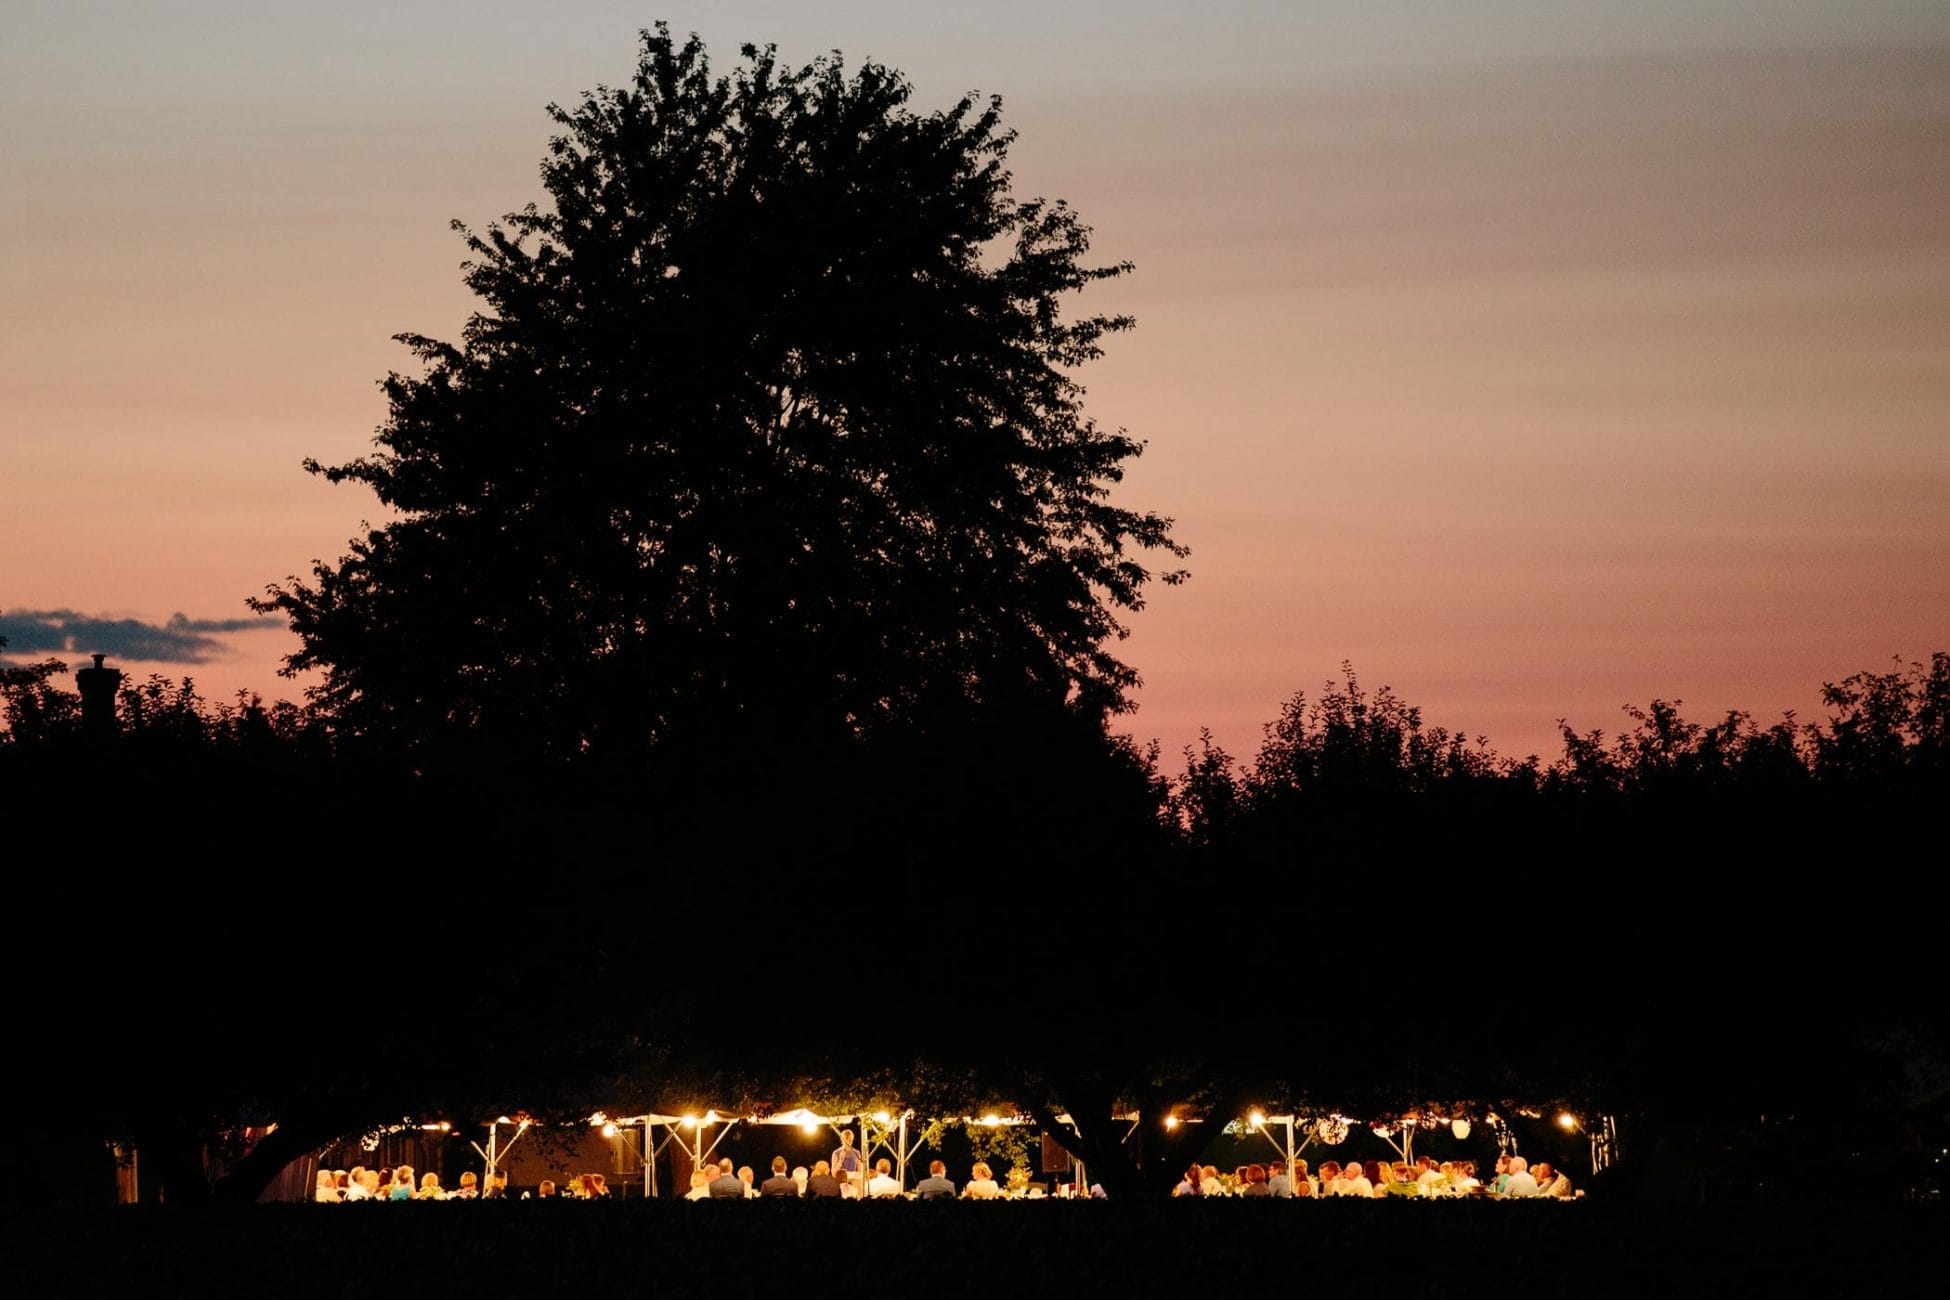 A twilight silhouette of distant large tree over glowing party tent wedding reception on a farm in rural Ontario. Documentary wedding photographer Pavel Kounine.